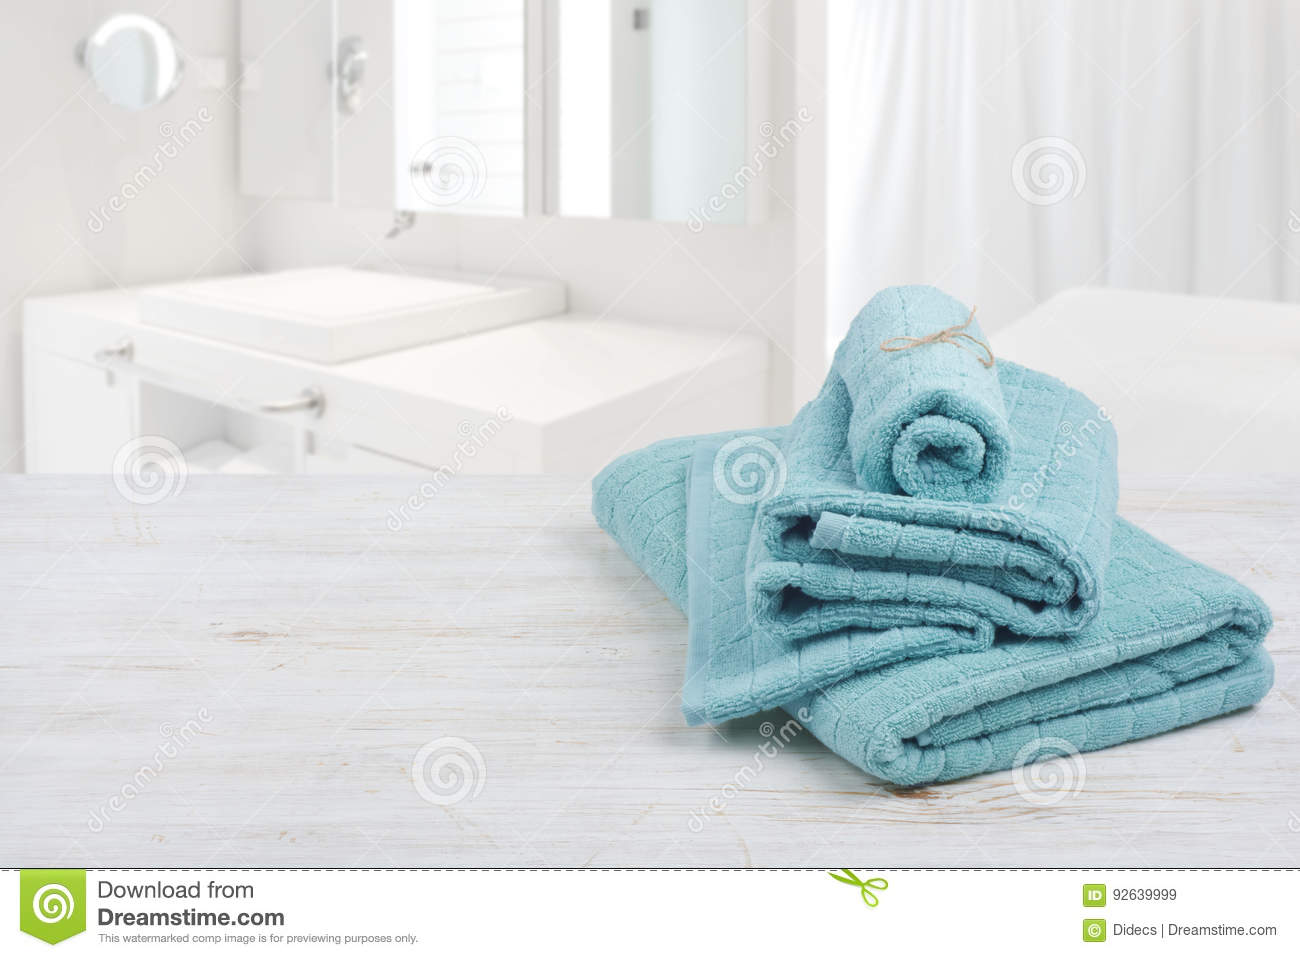 Turquoise Spa Towels On Wooden Surface Over Blurred Bathroom ...